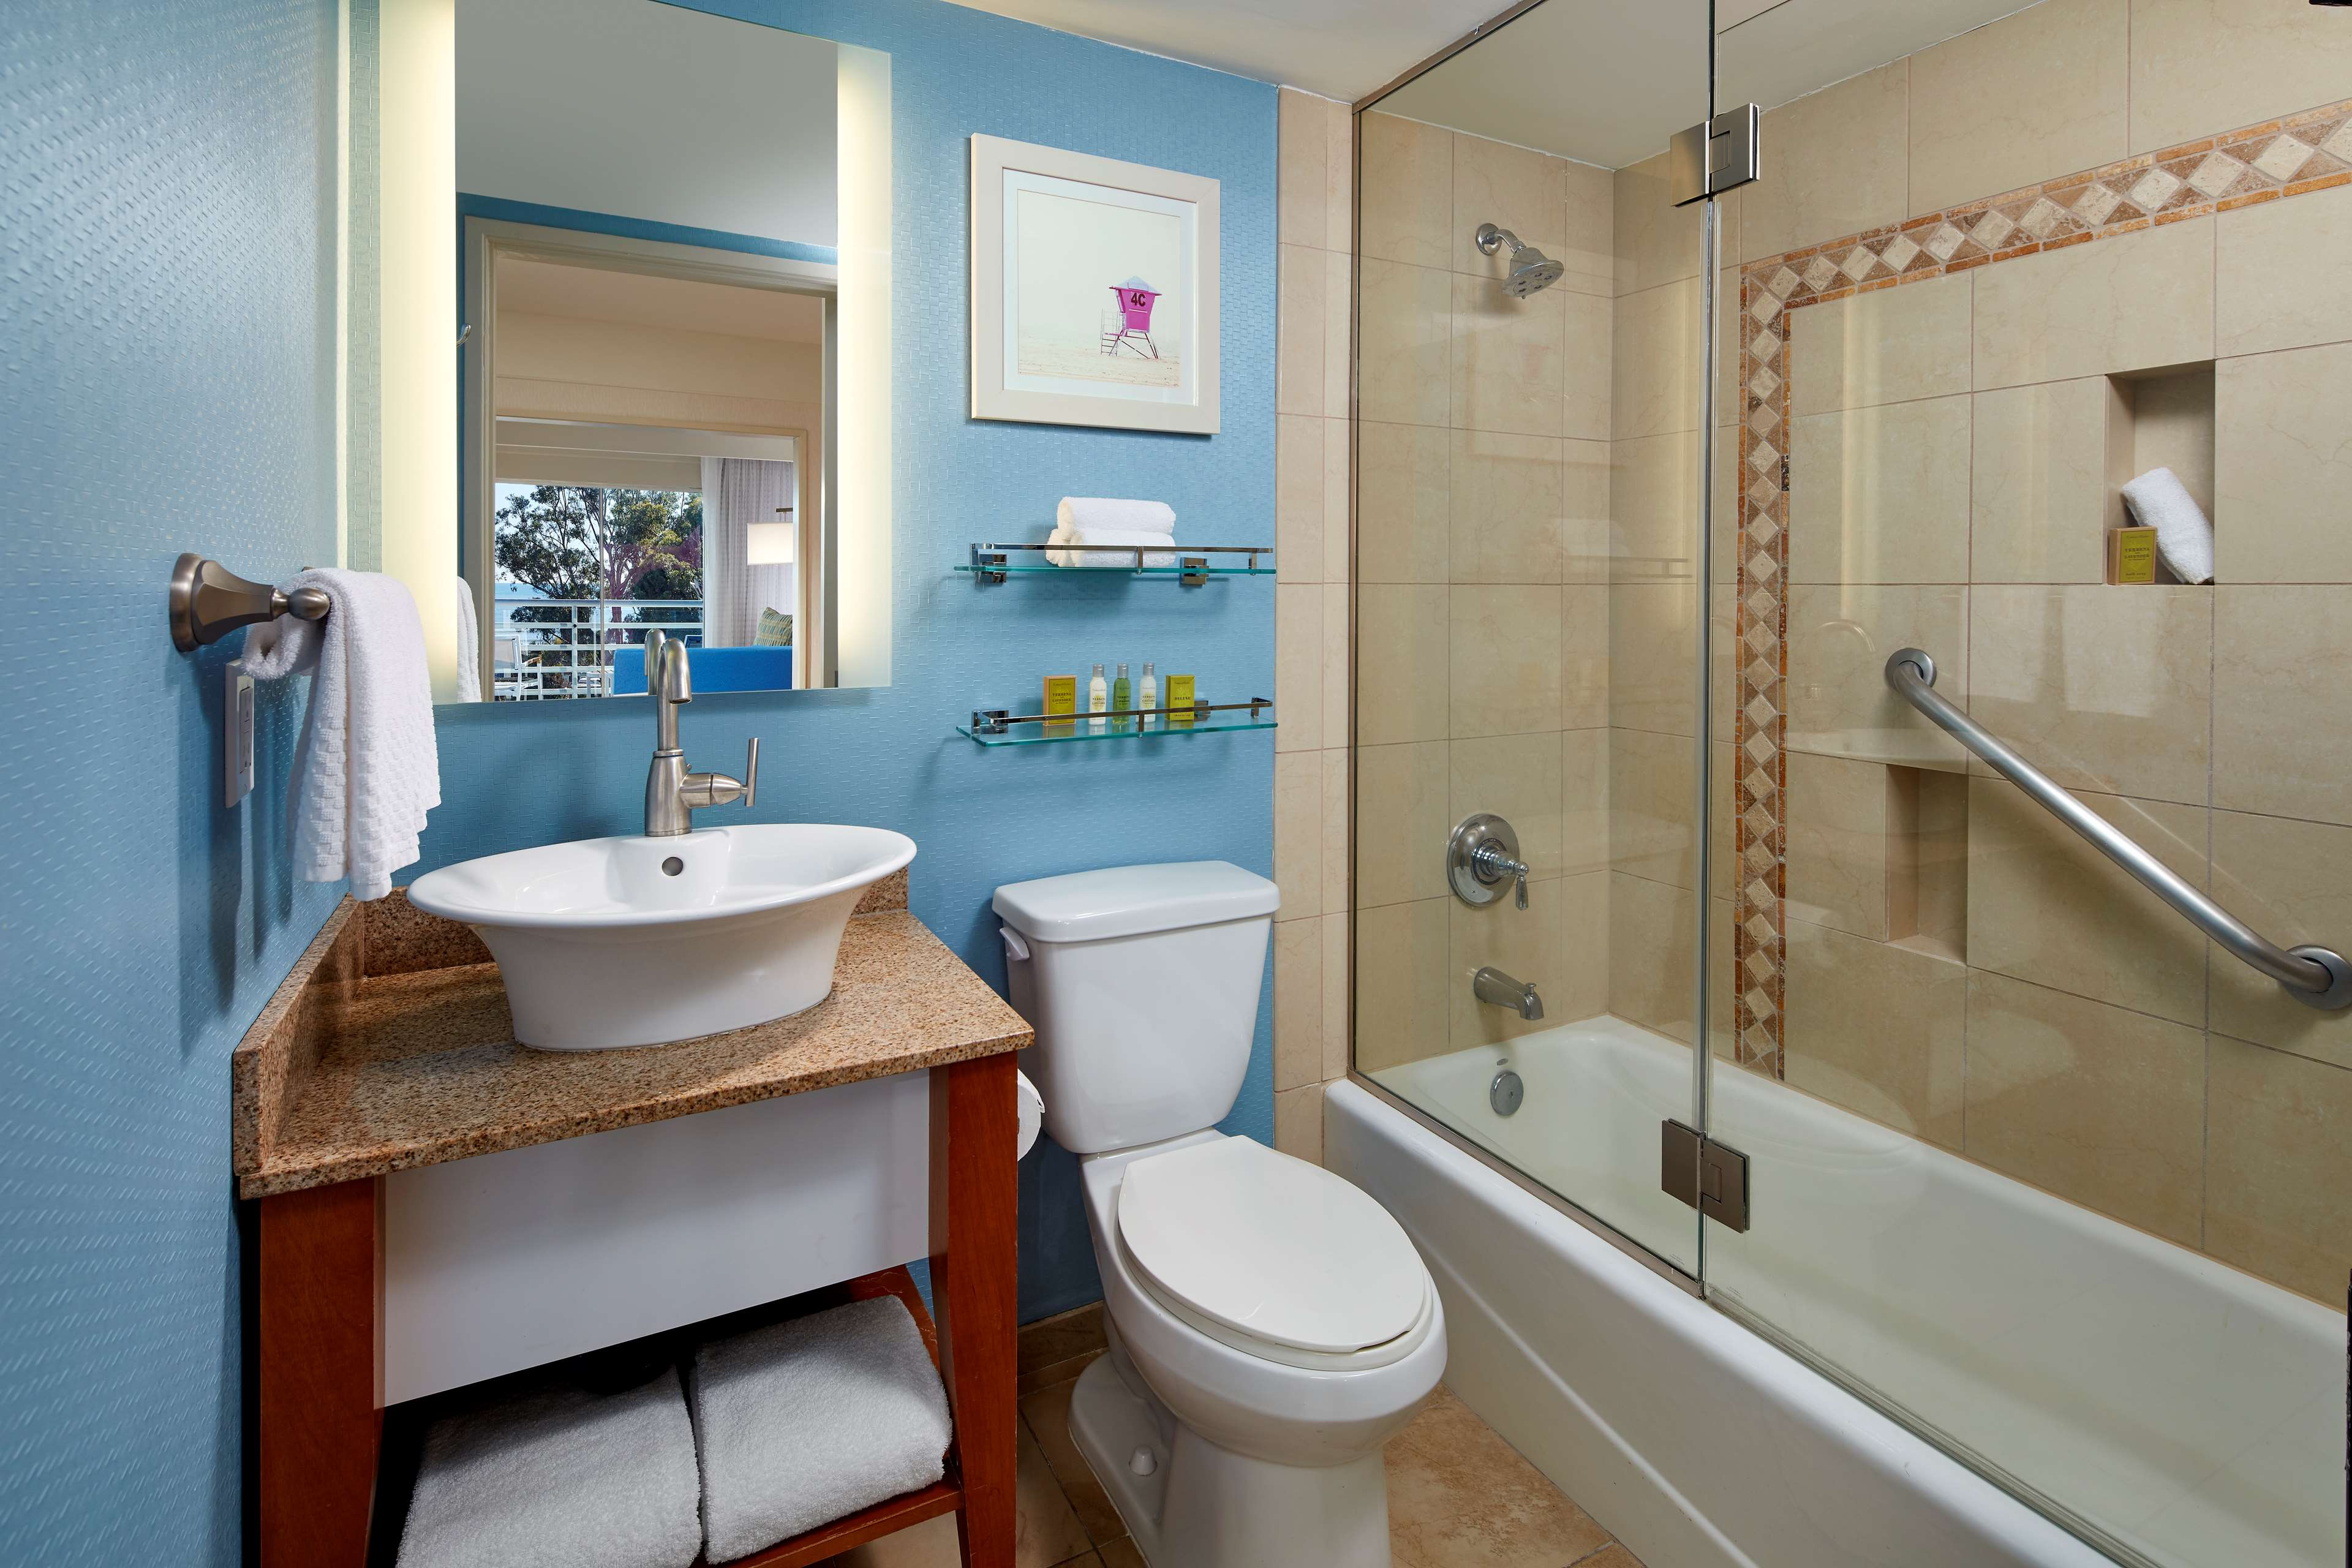 DoubleTree Suites by Hilton Hotel Doheny Beach - Dana Point image 10